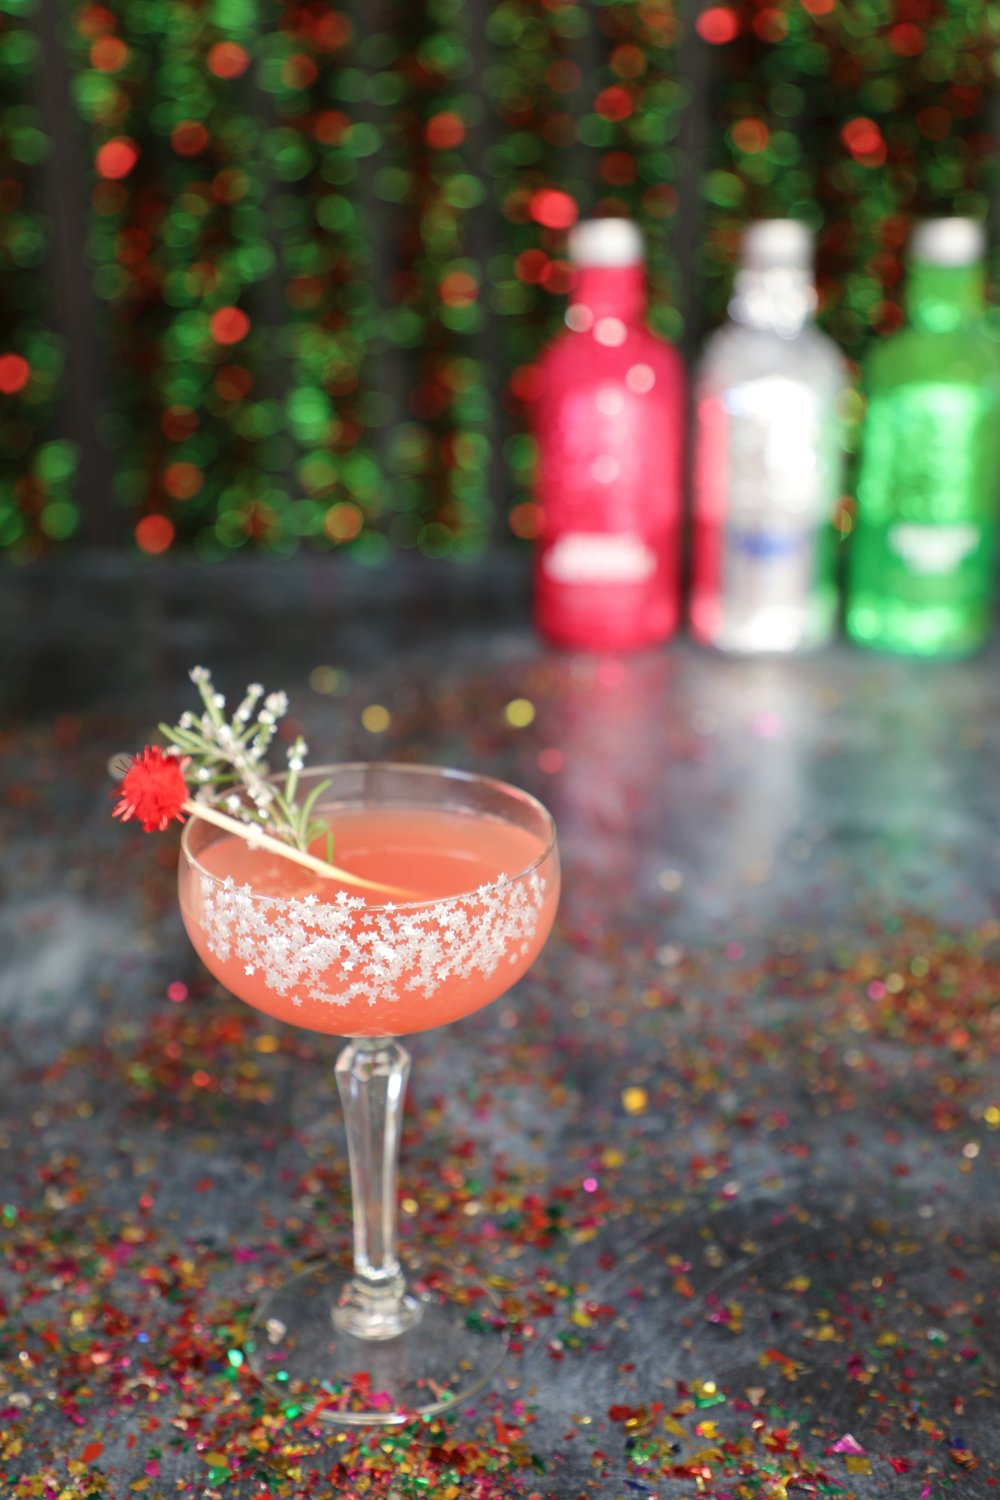 Winter Citrus Grove Sparkler made with Absolut Grapefruit | drinkingwithchickens.com #AD #nosugarcoating